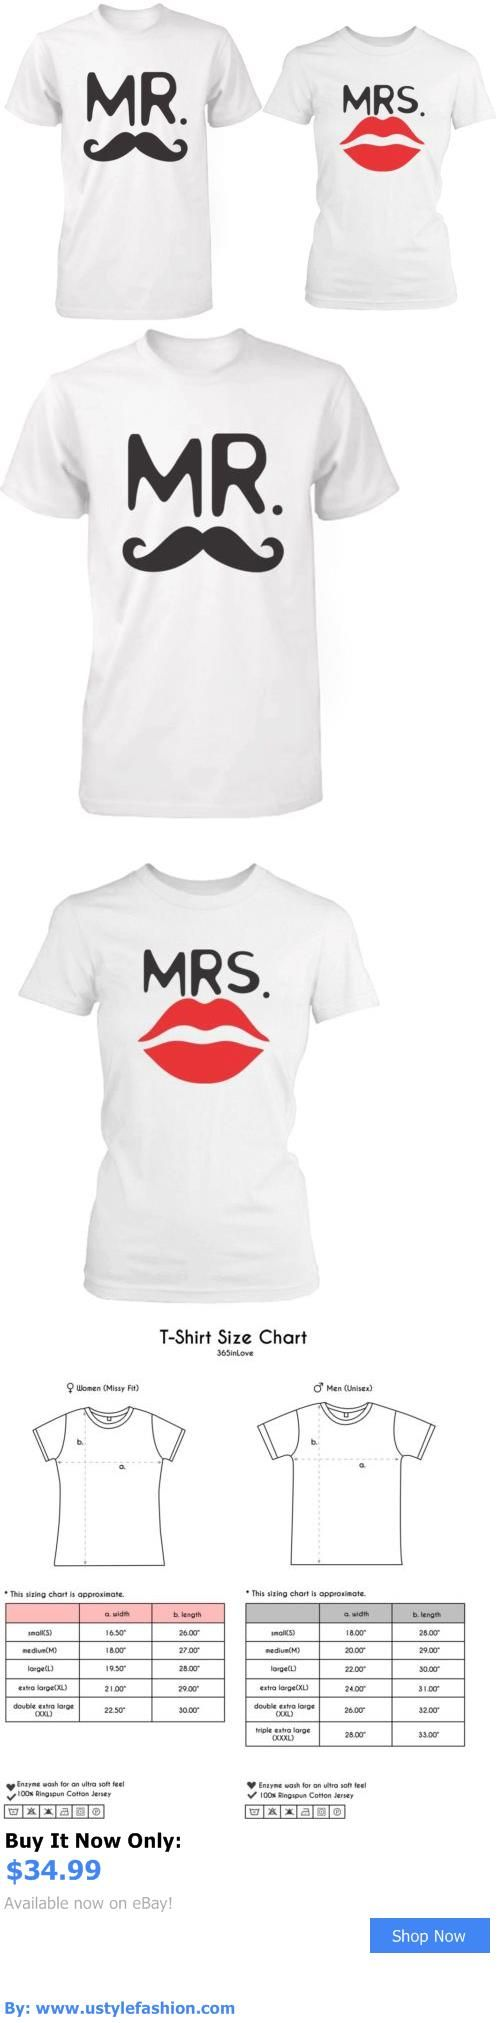 Unisex adult clothing: Mr And Mrs Matching White Couple Shirts For Newlyweds - Mustache And Lip Design BUY IT NOW ONLY: $34.99 #ustylefashionUnisexadultclothing OR #ustylefashion